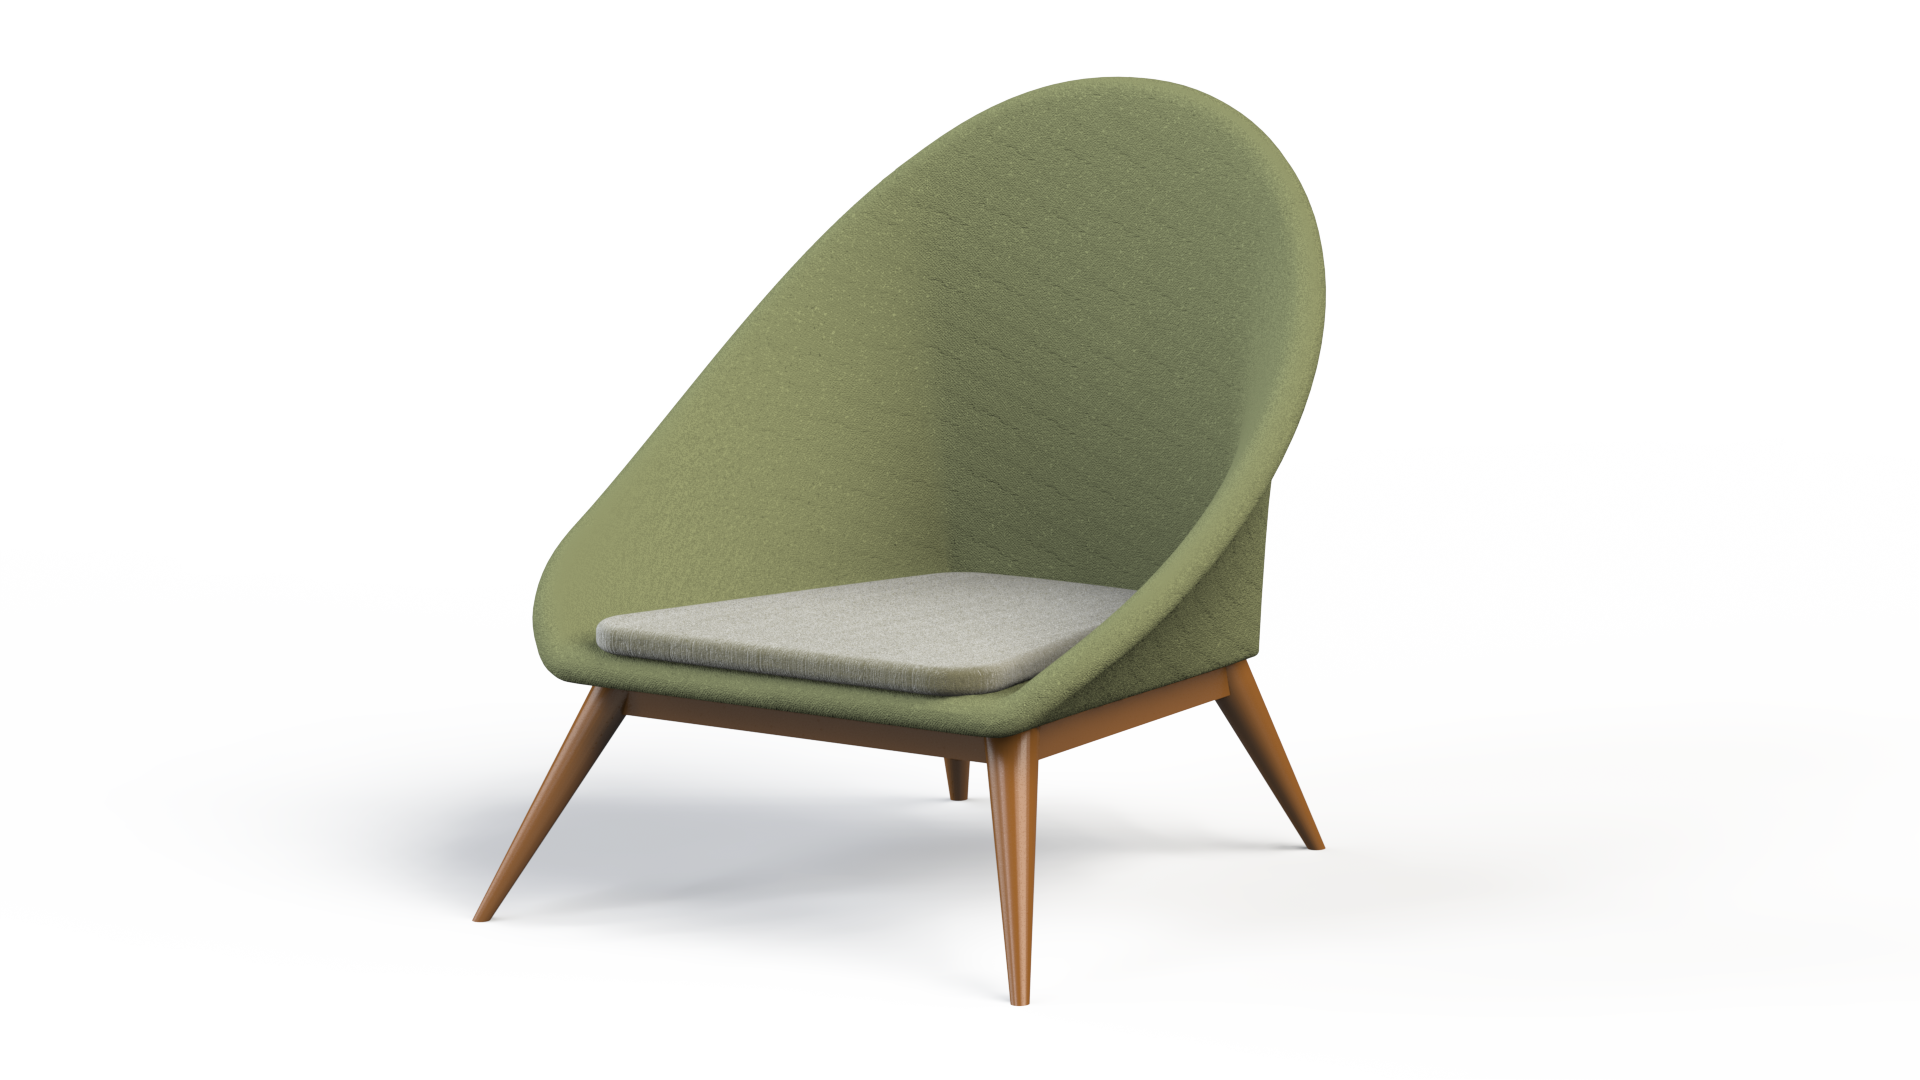 Egg chair, Design, 3d model, texture, lighting, rendering. by.